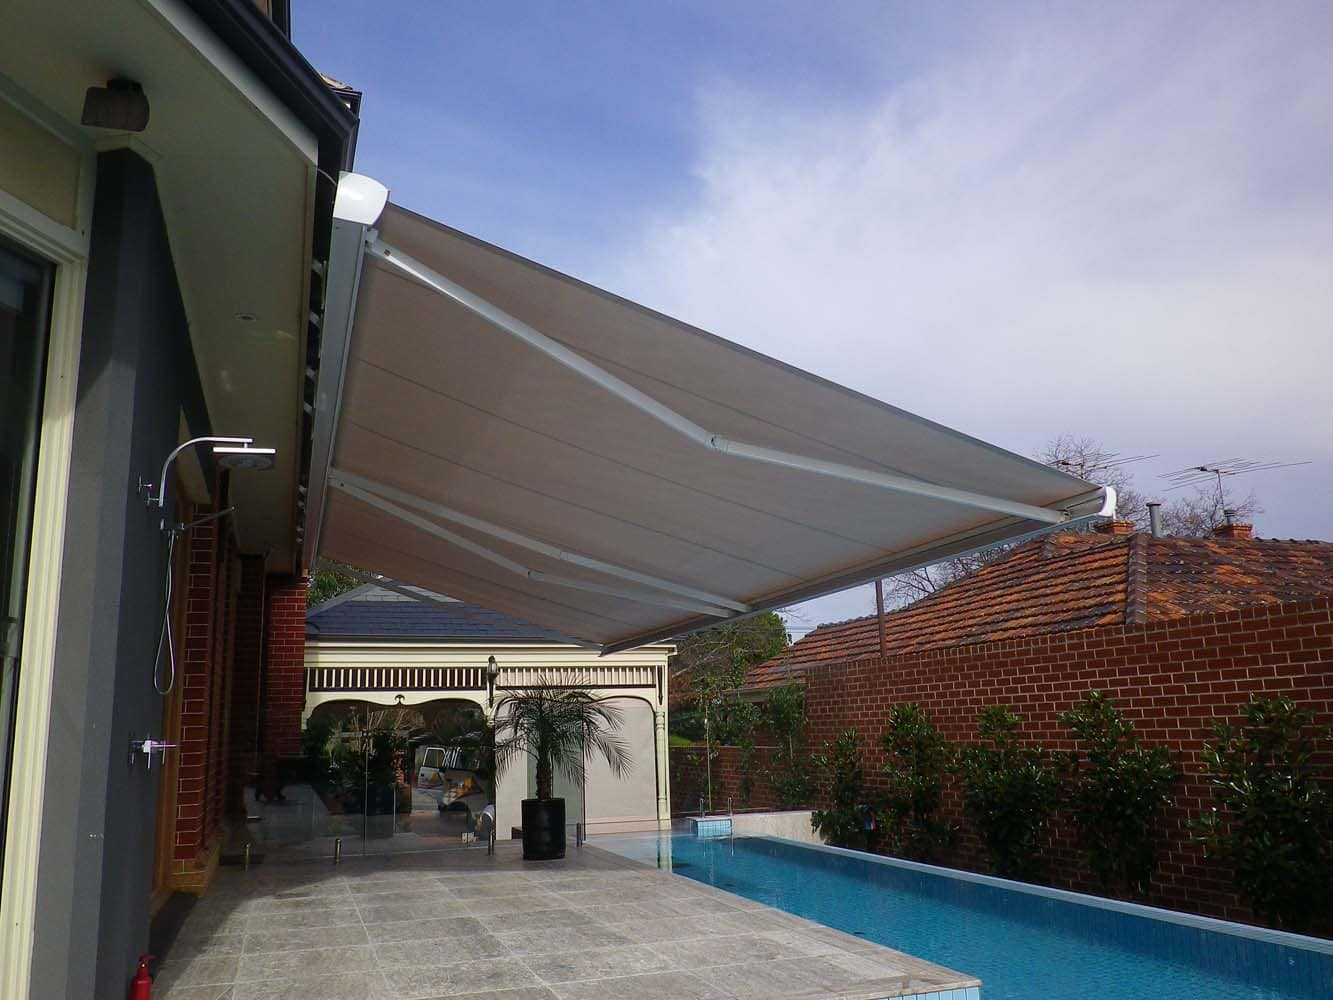 RETRACTABLE AWNING (13)